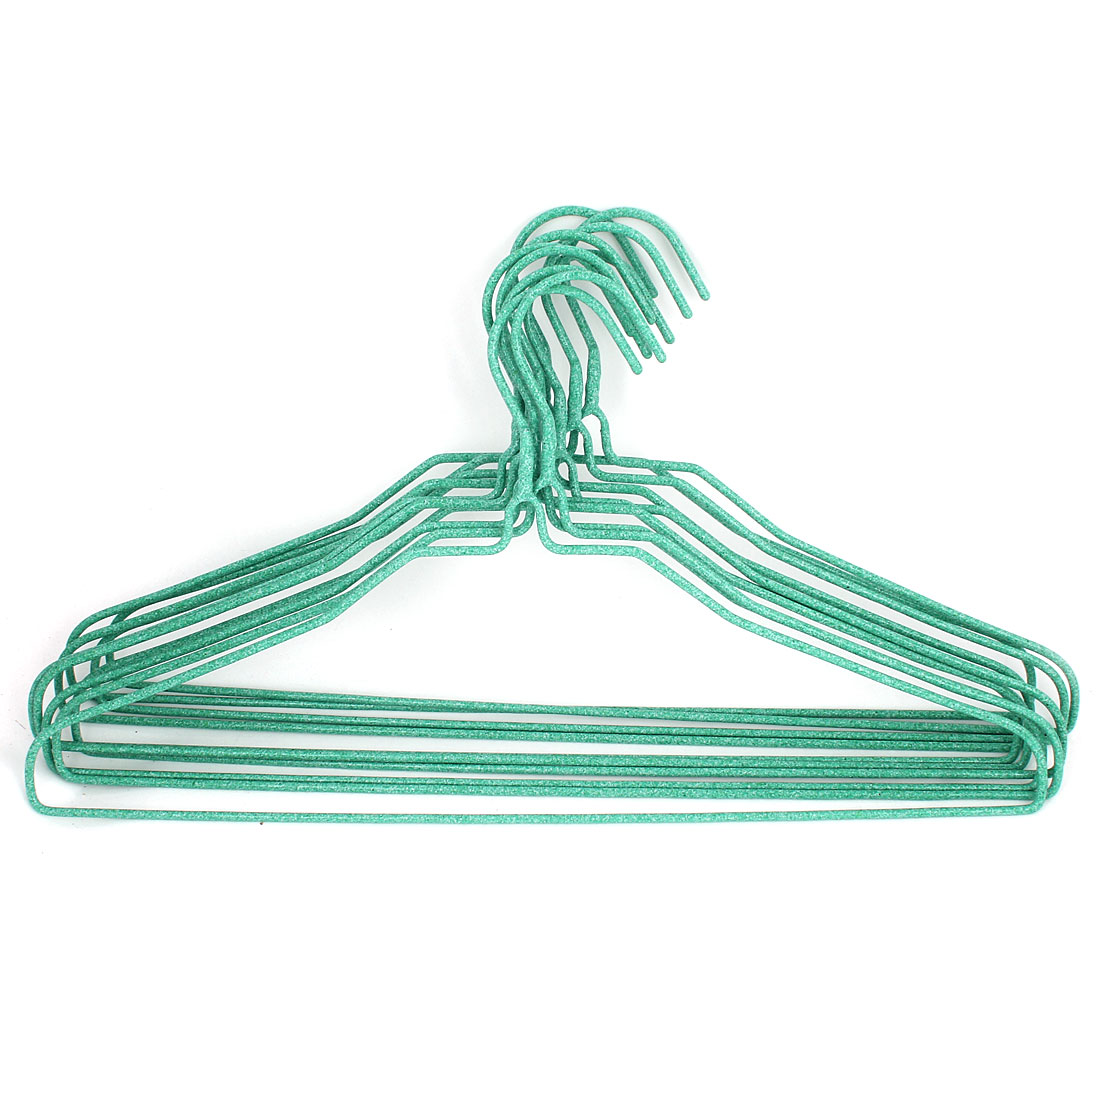 Household Plastic Wrapped Metal Rack Clothes Coat Hook Hangers 10 Pcs Green